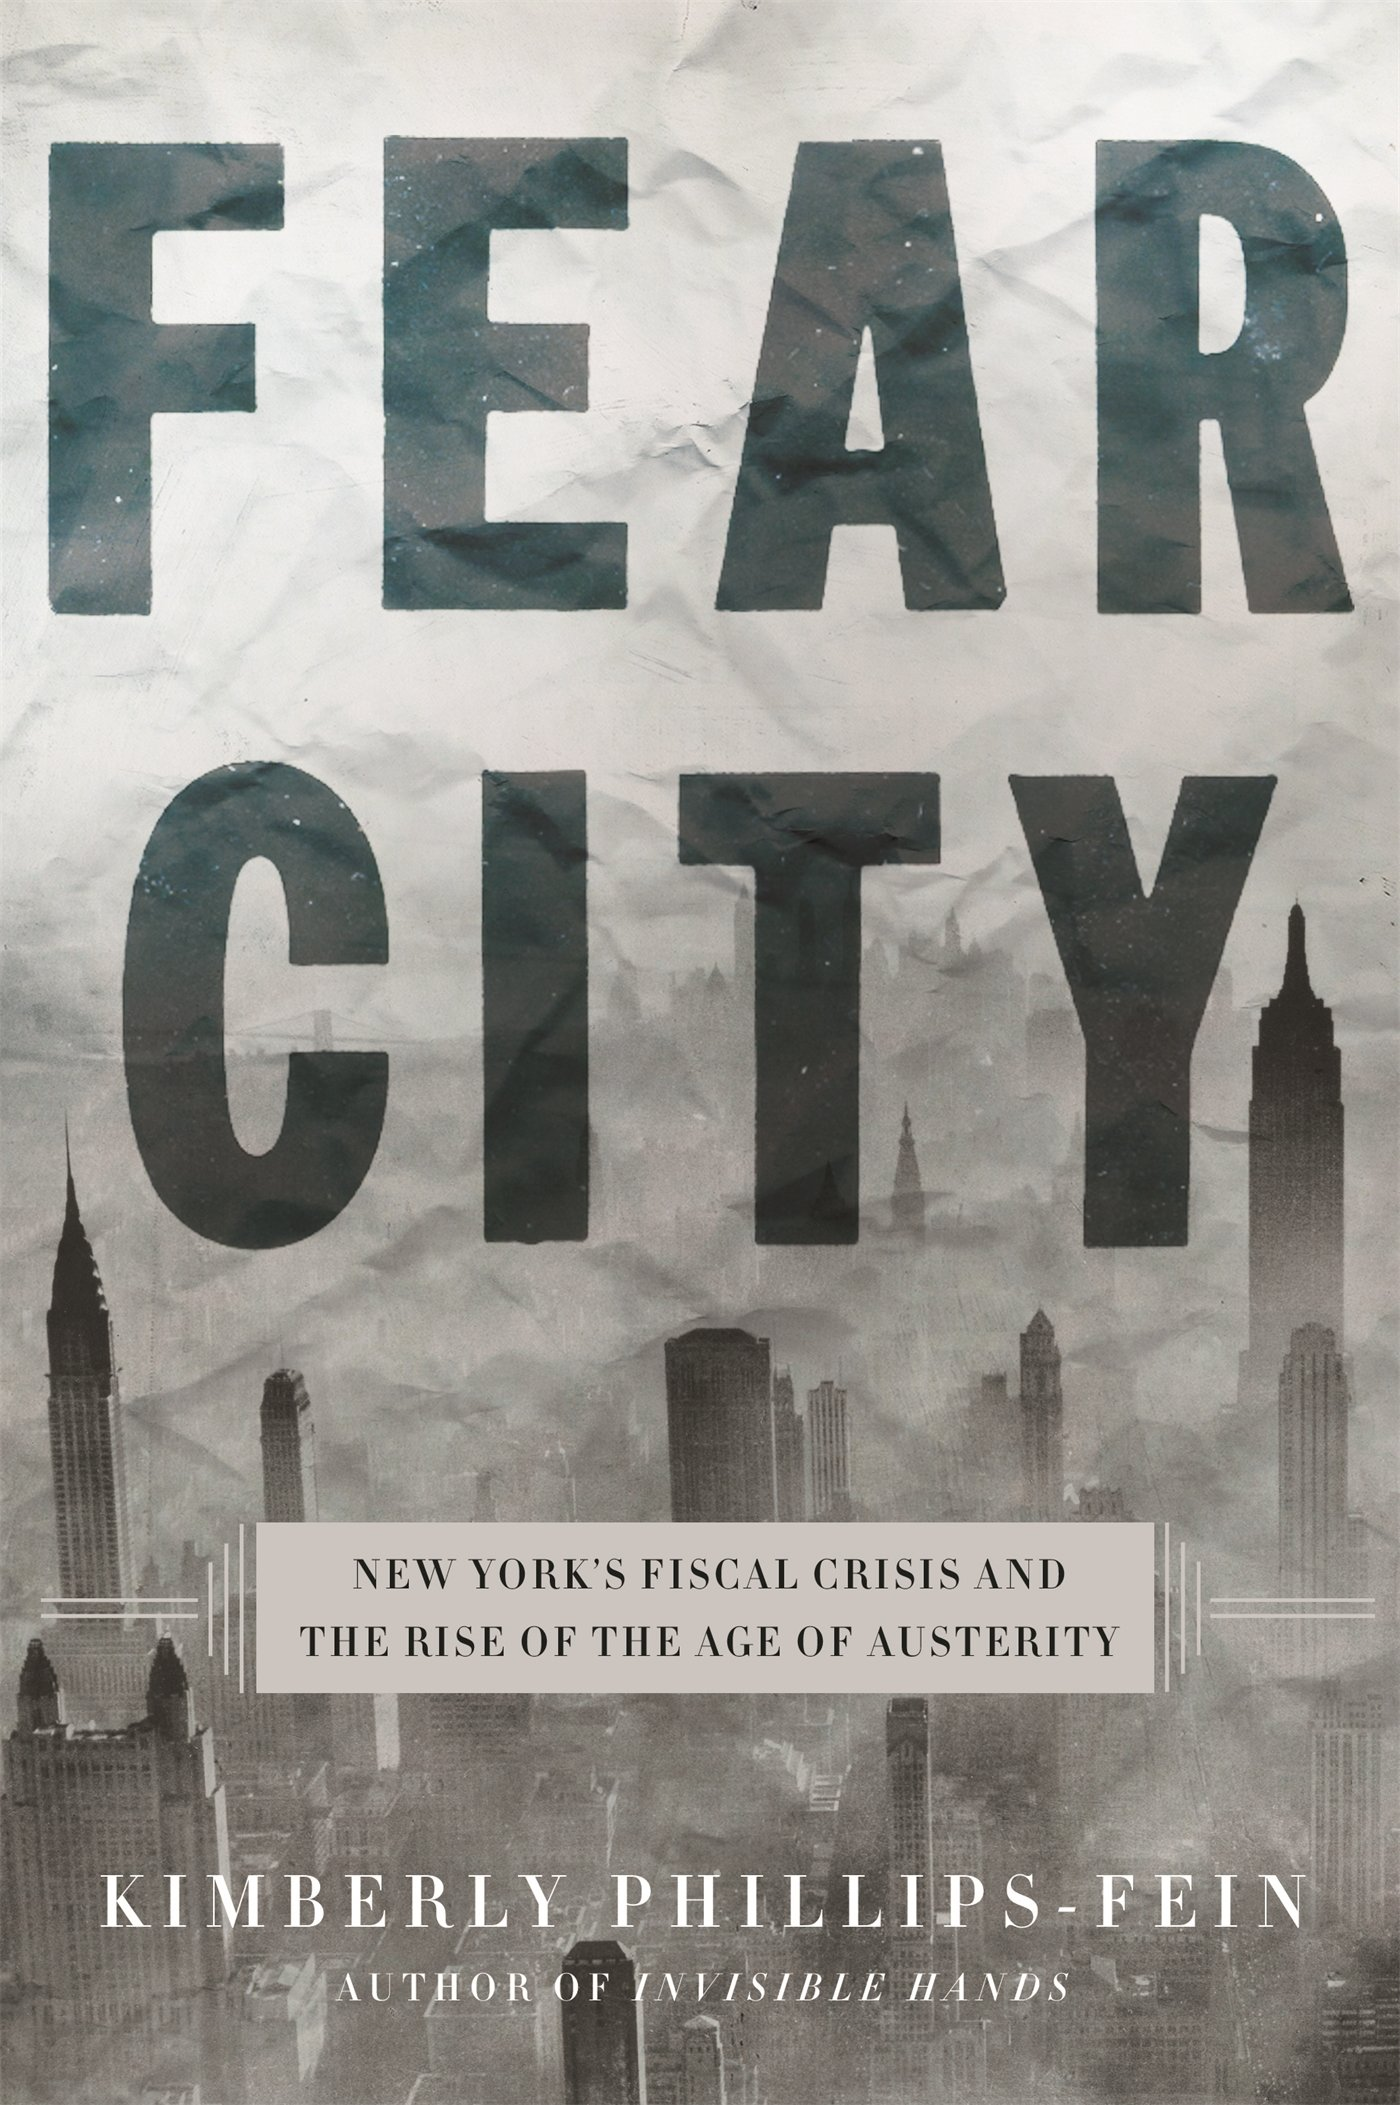 Fear City: New York's Fiscal Crisis and the Rise of